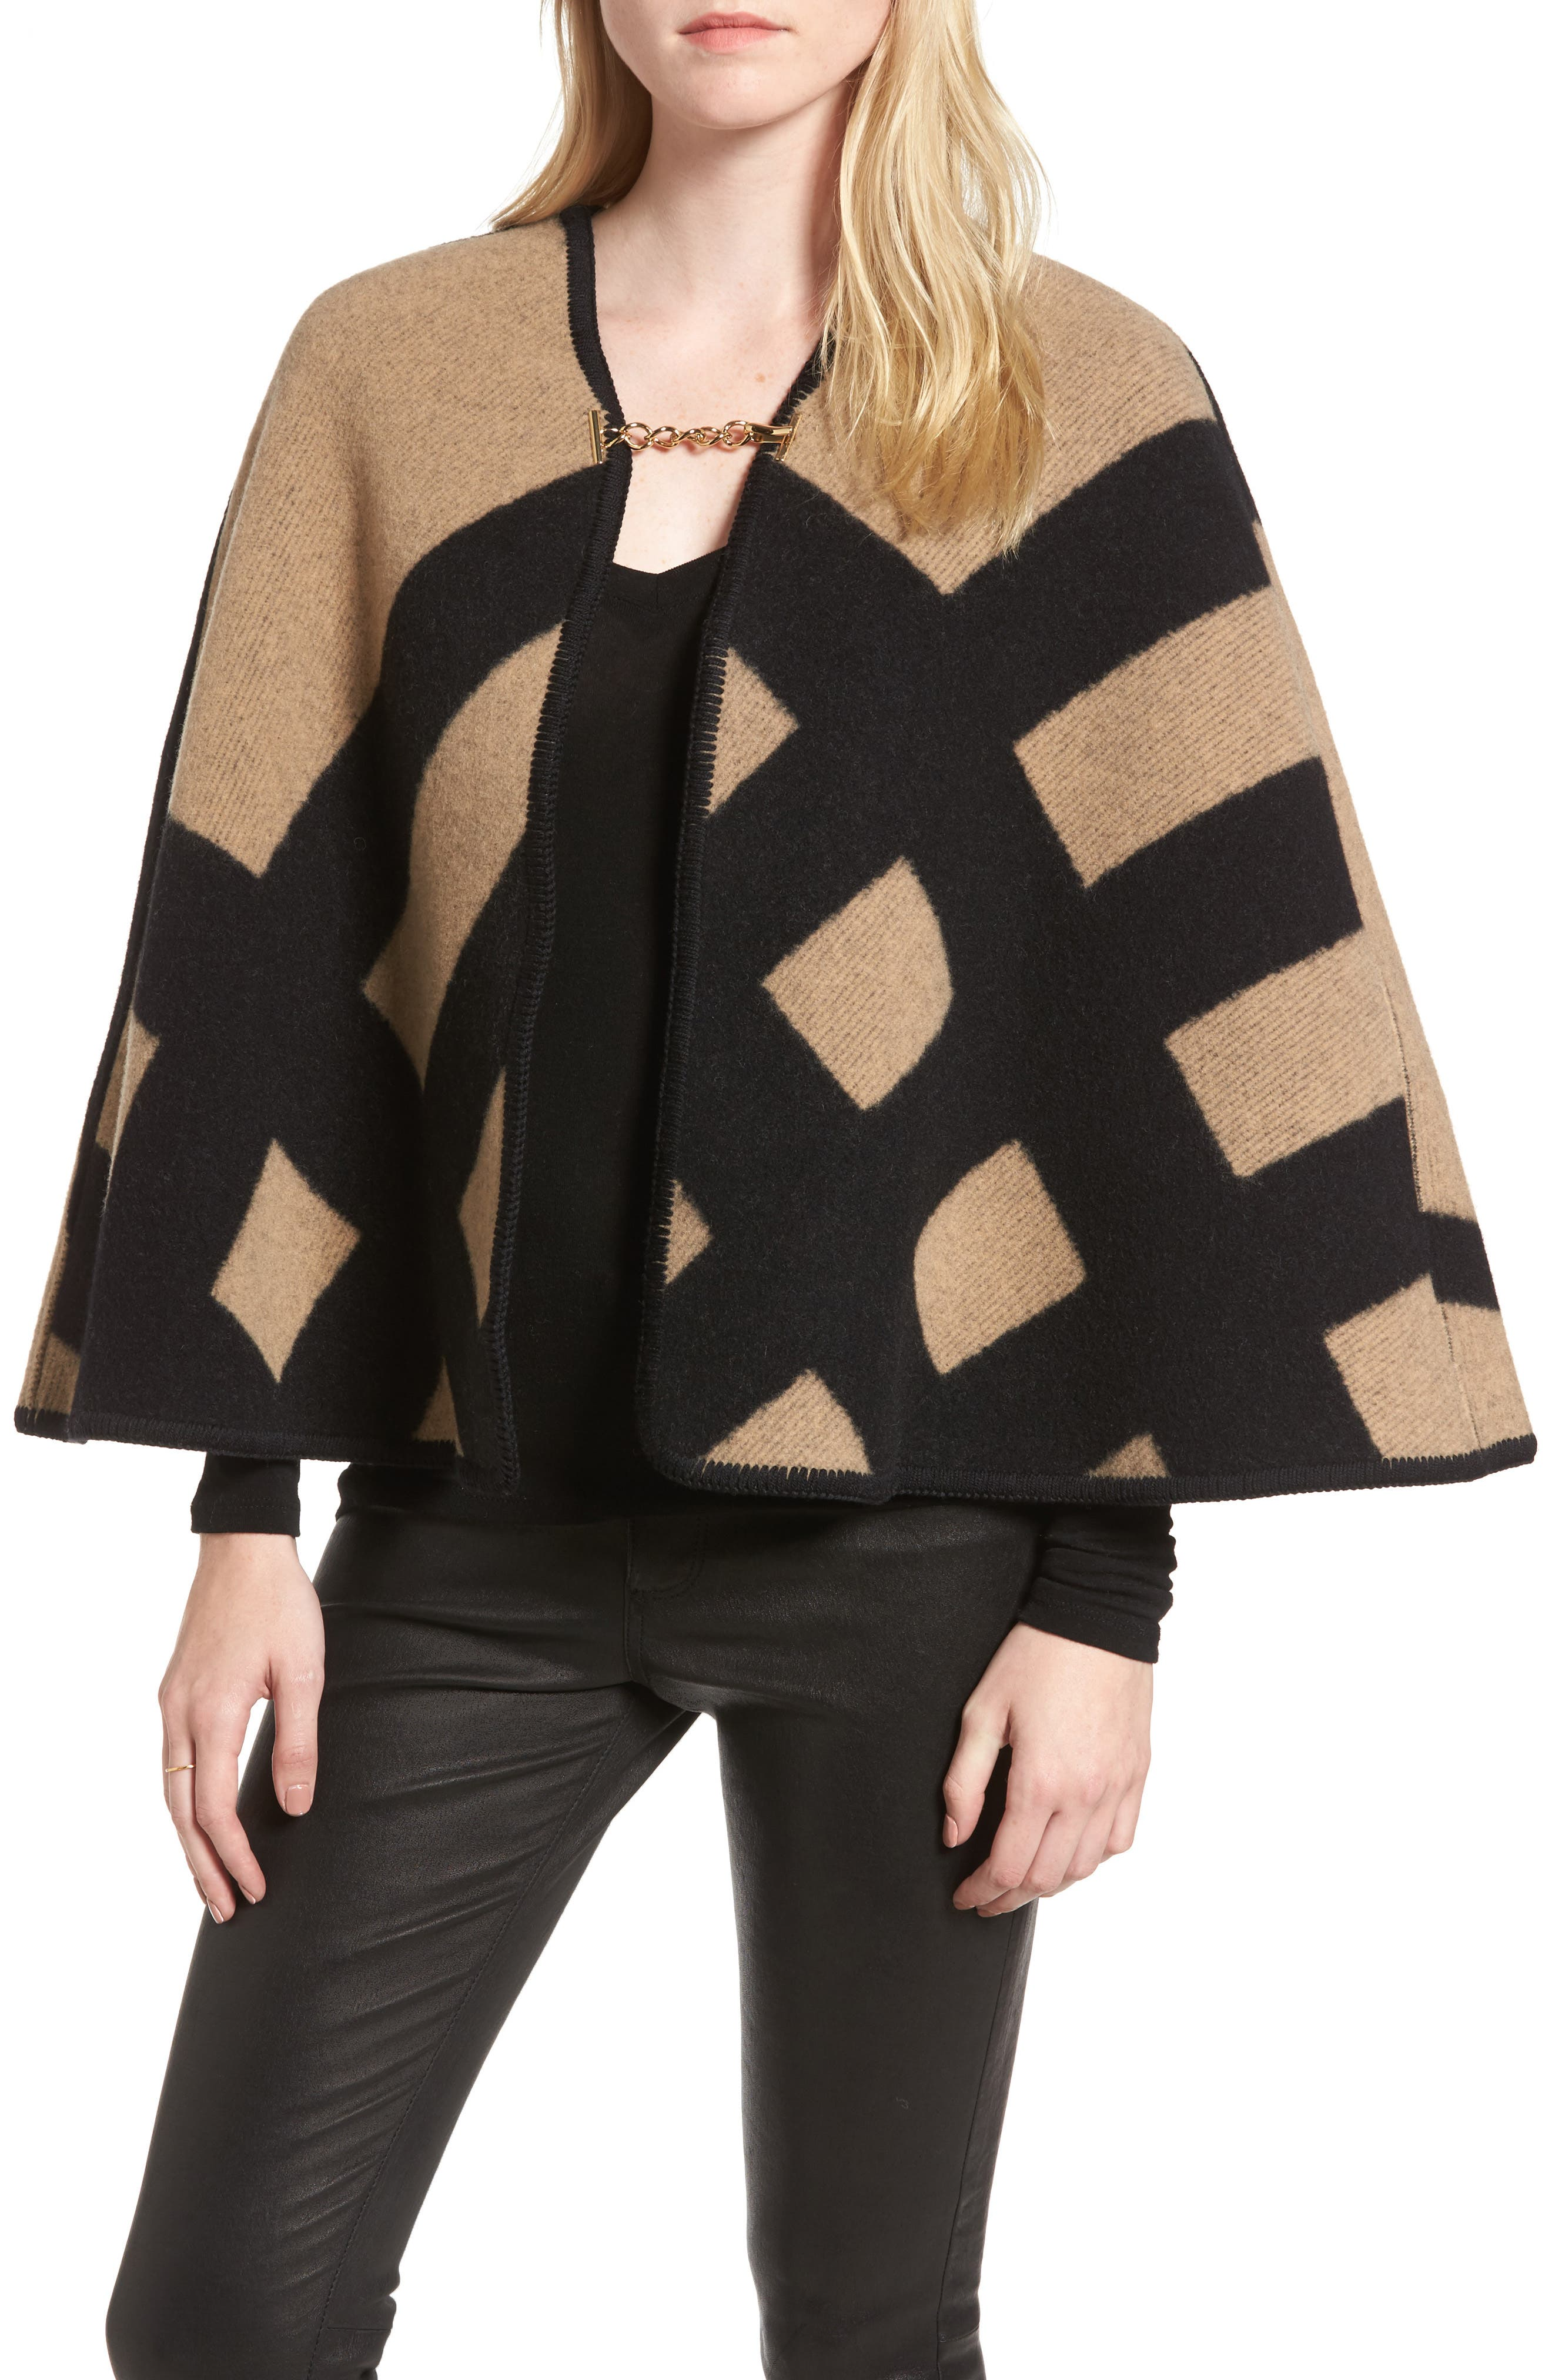 Blanket Check Wool & Cashmere Poncho,                         Main,                         color, CAMEL/ BLACK